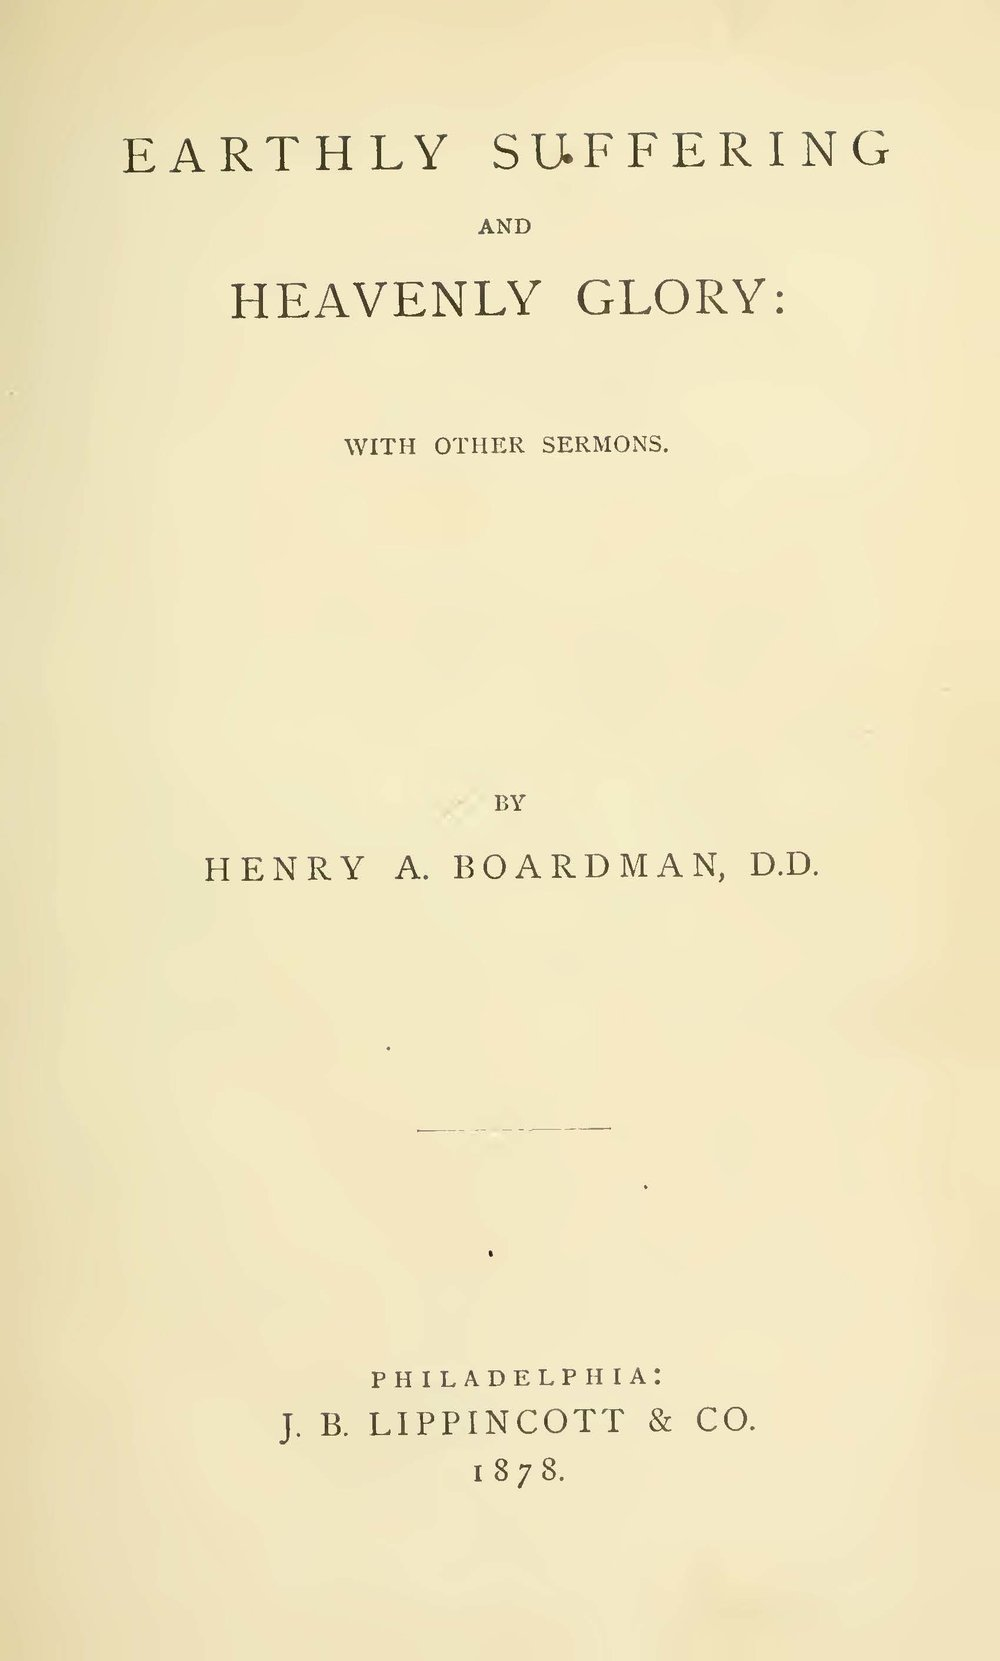 Boardman, Henry Augustus, Earthly Suffering and Heavenly Glory Title Page.jpg